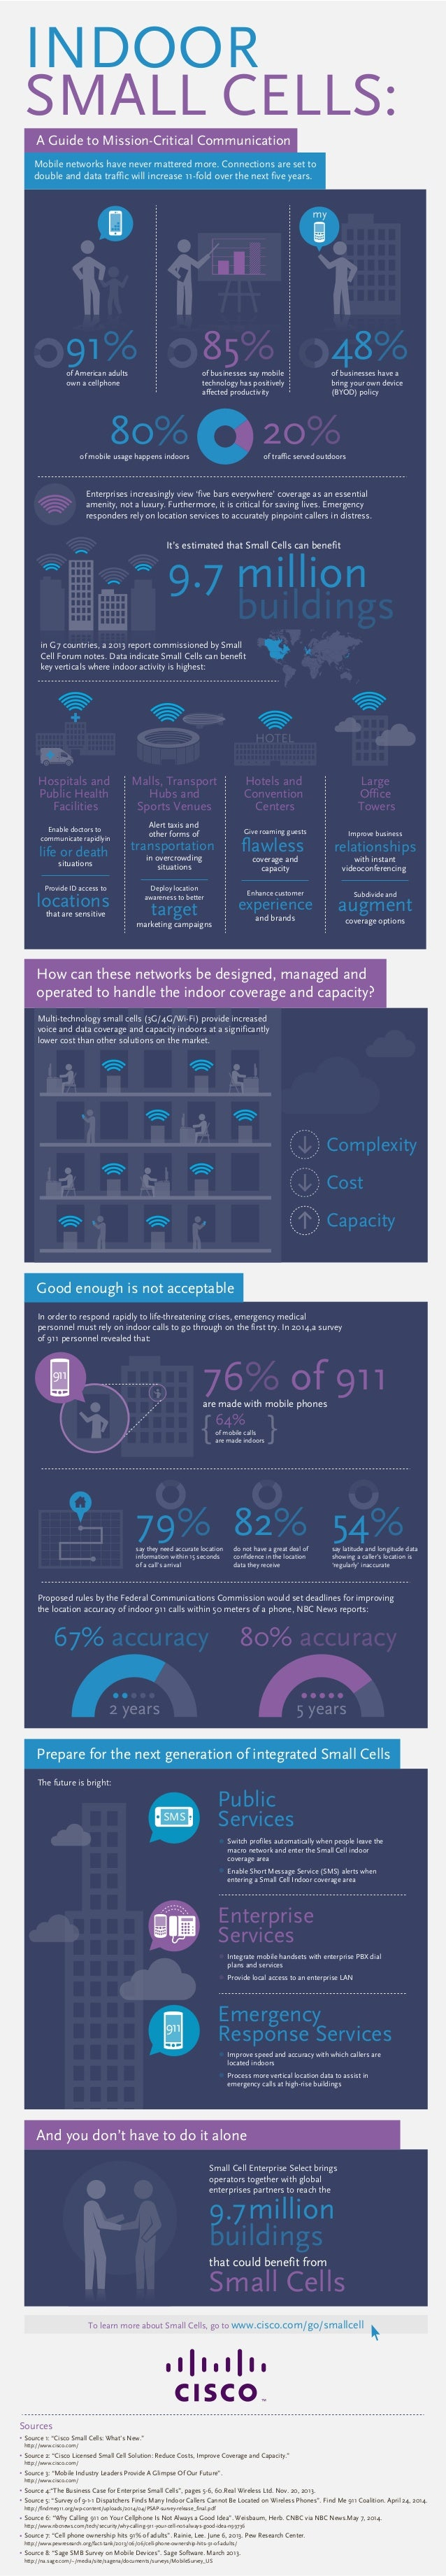 [Infographic] Indoor Small Cells - Meeting Current and Future Communication Needs